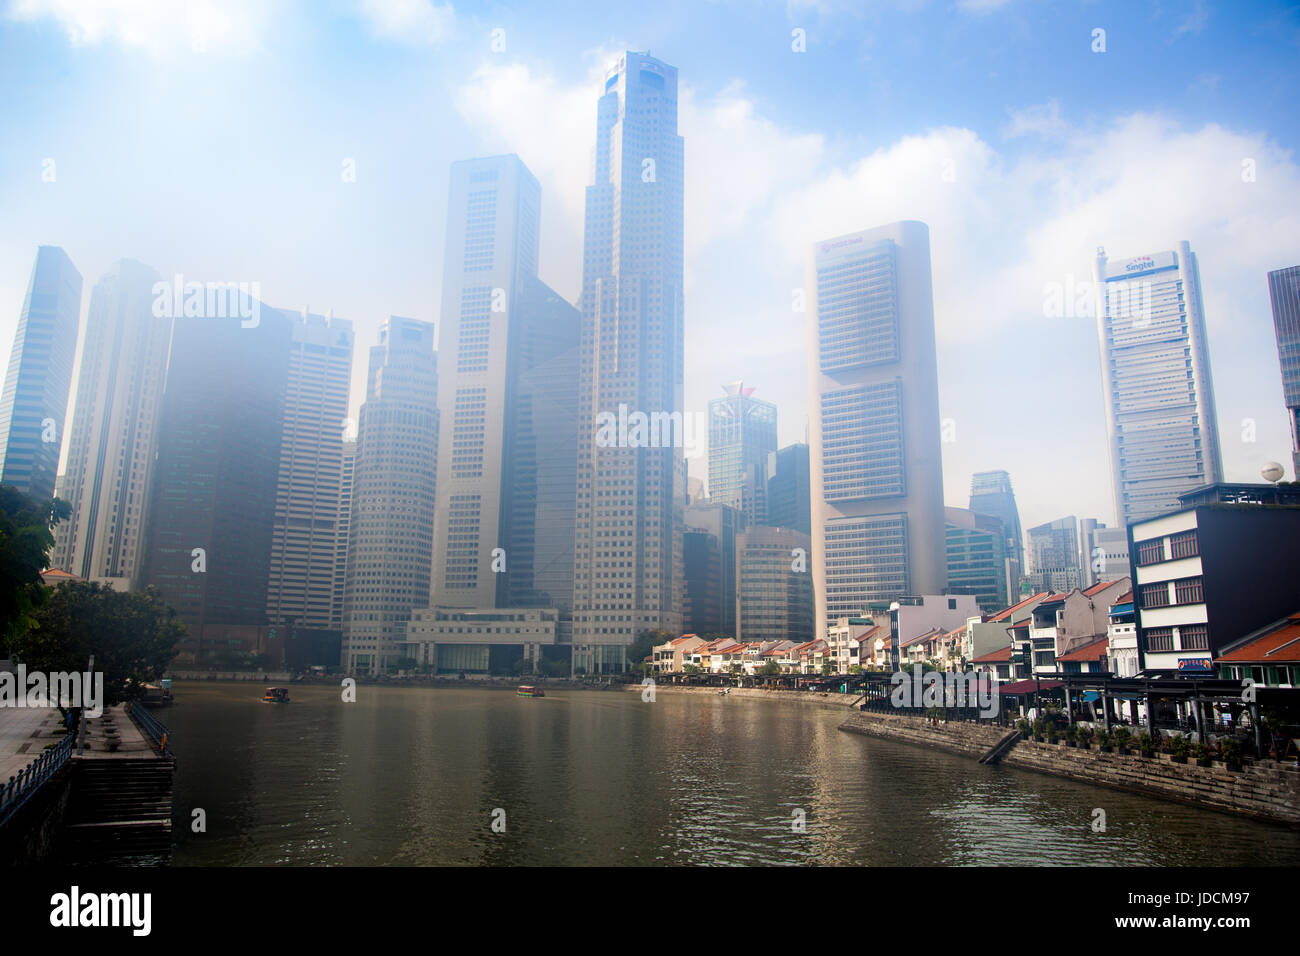 Sky-scrapers veiled by morning mist, Boat Quay, Singapore - Stock Image